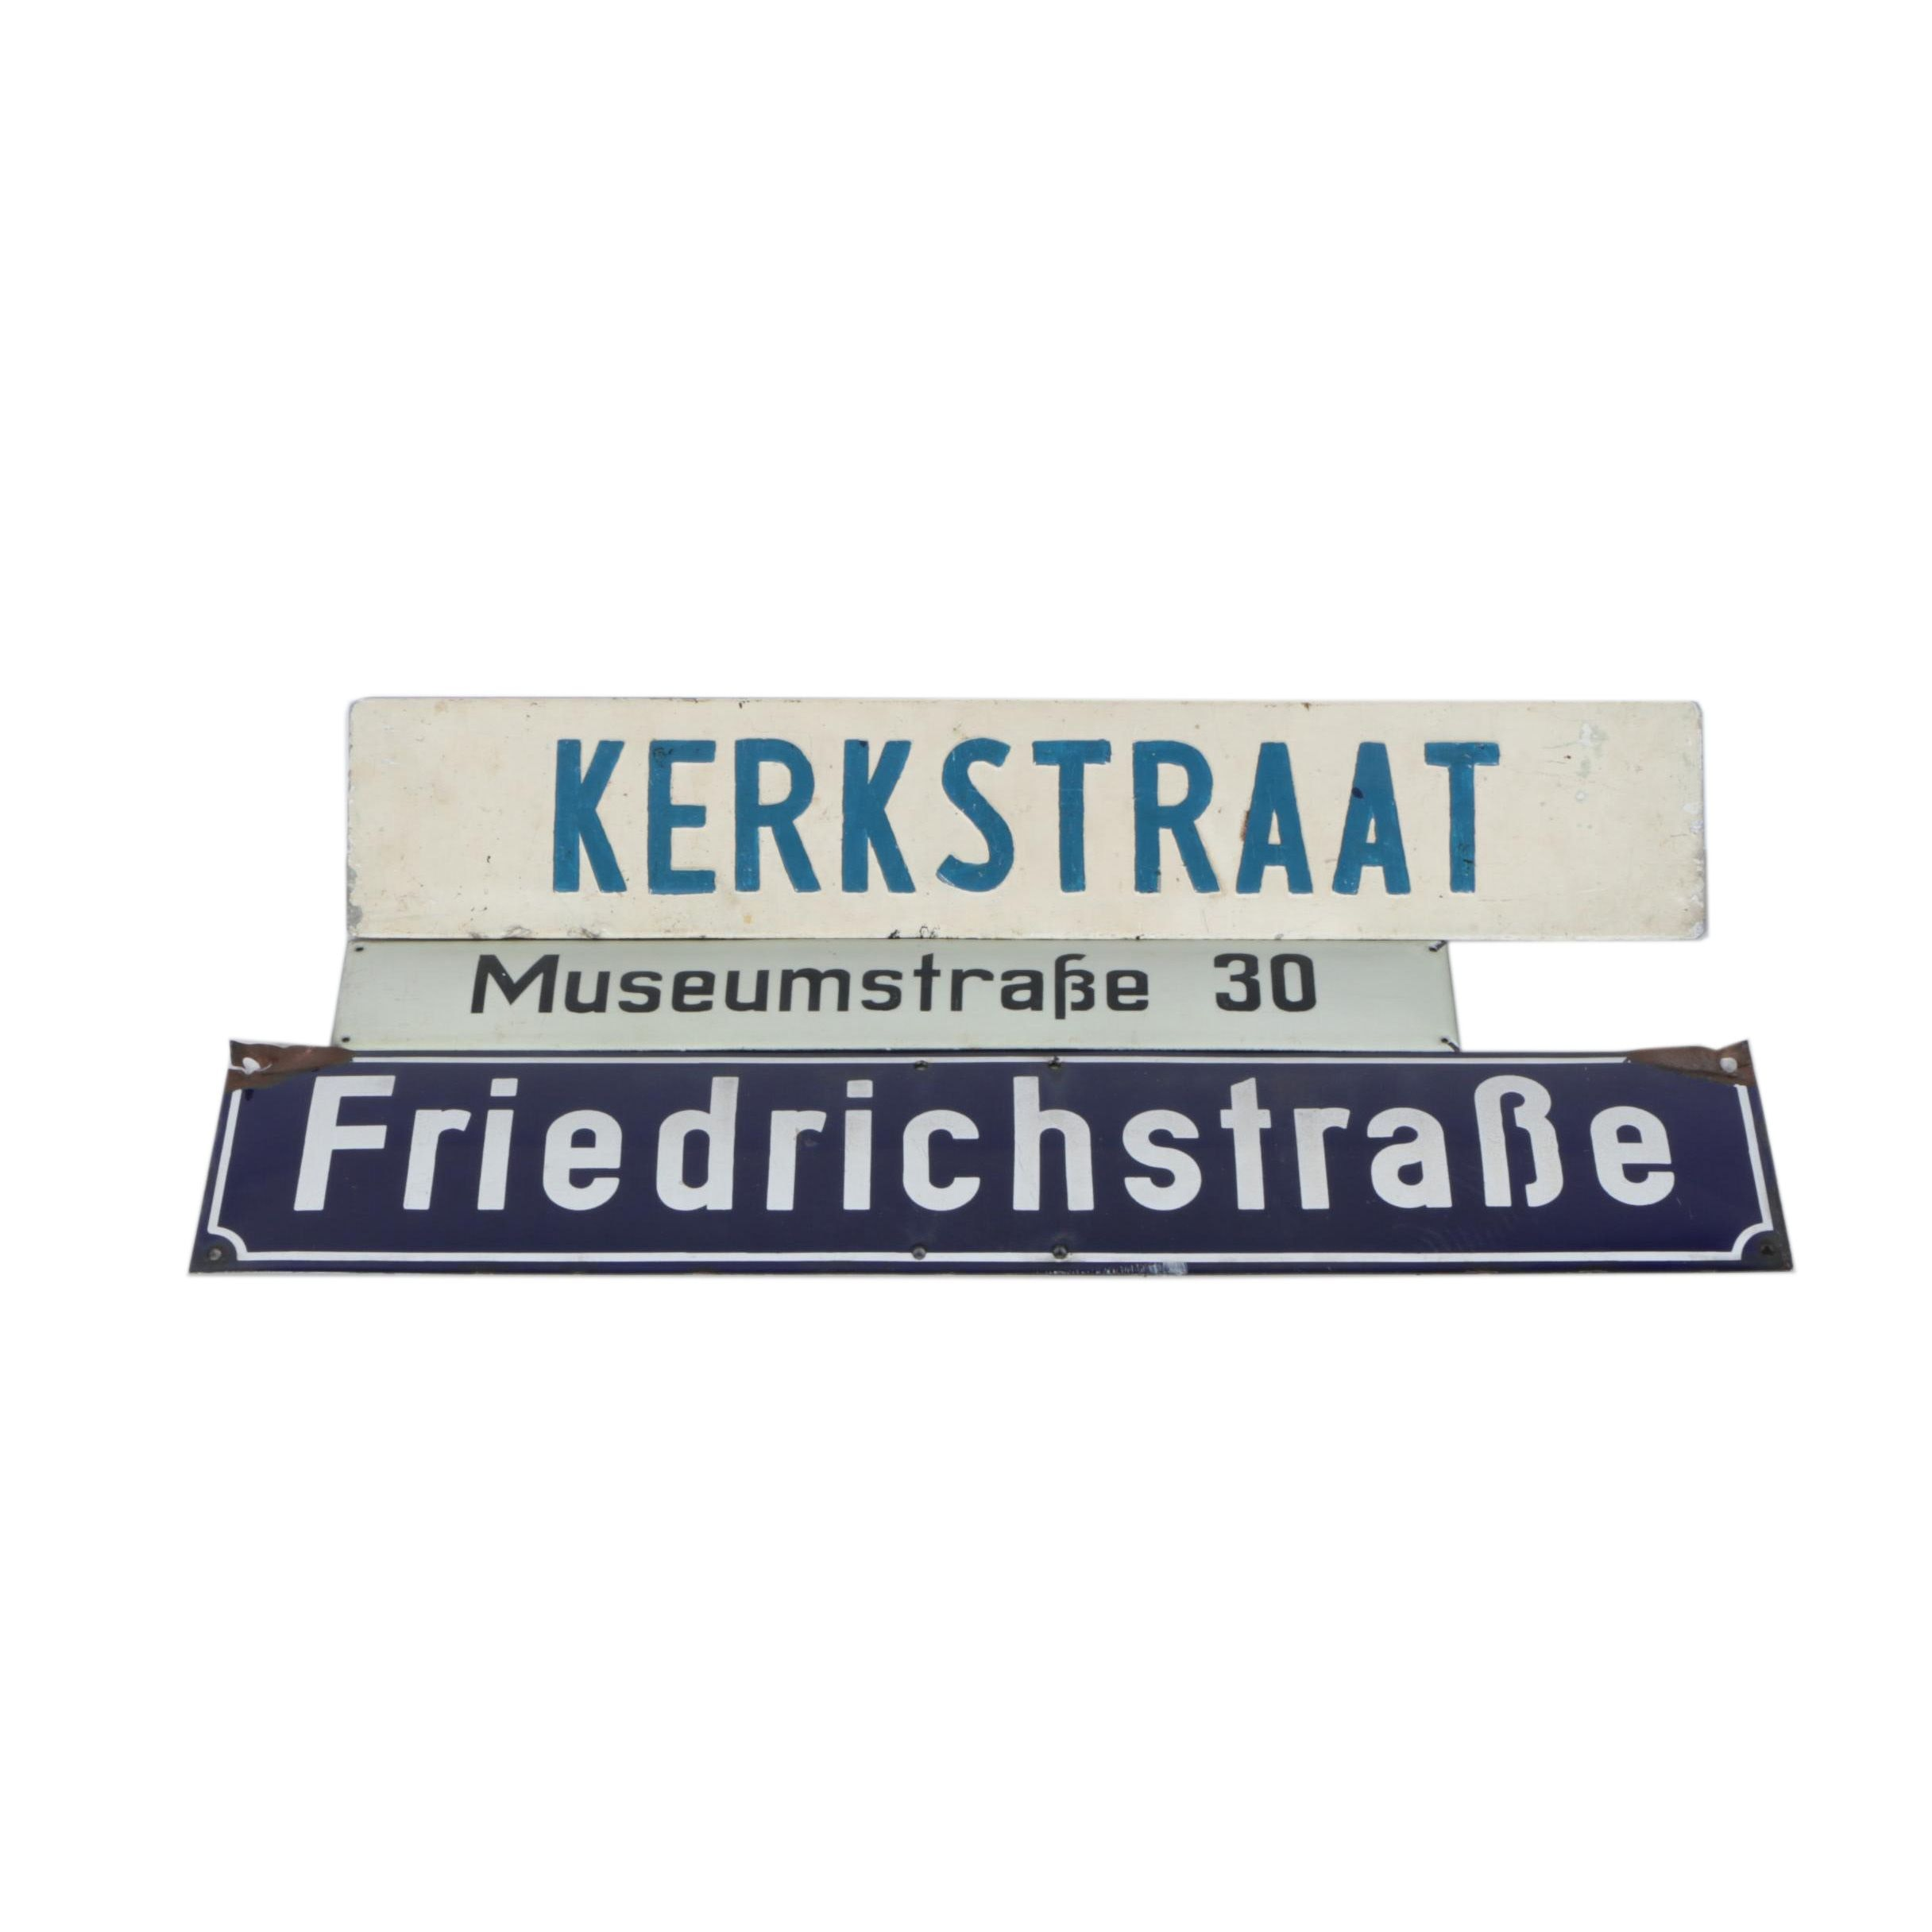 Grouping of Dutch and German Street Signs